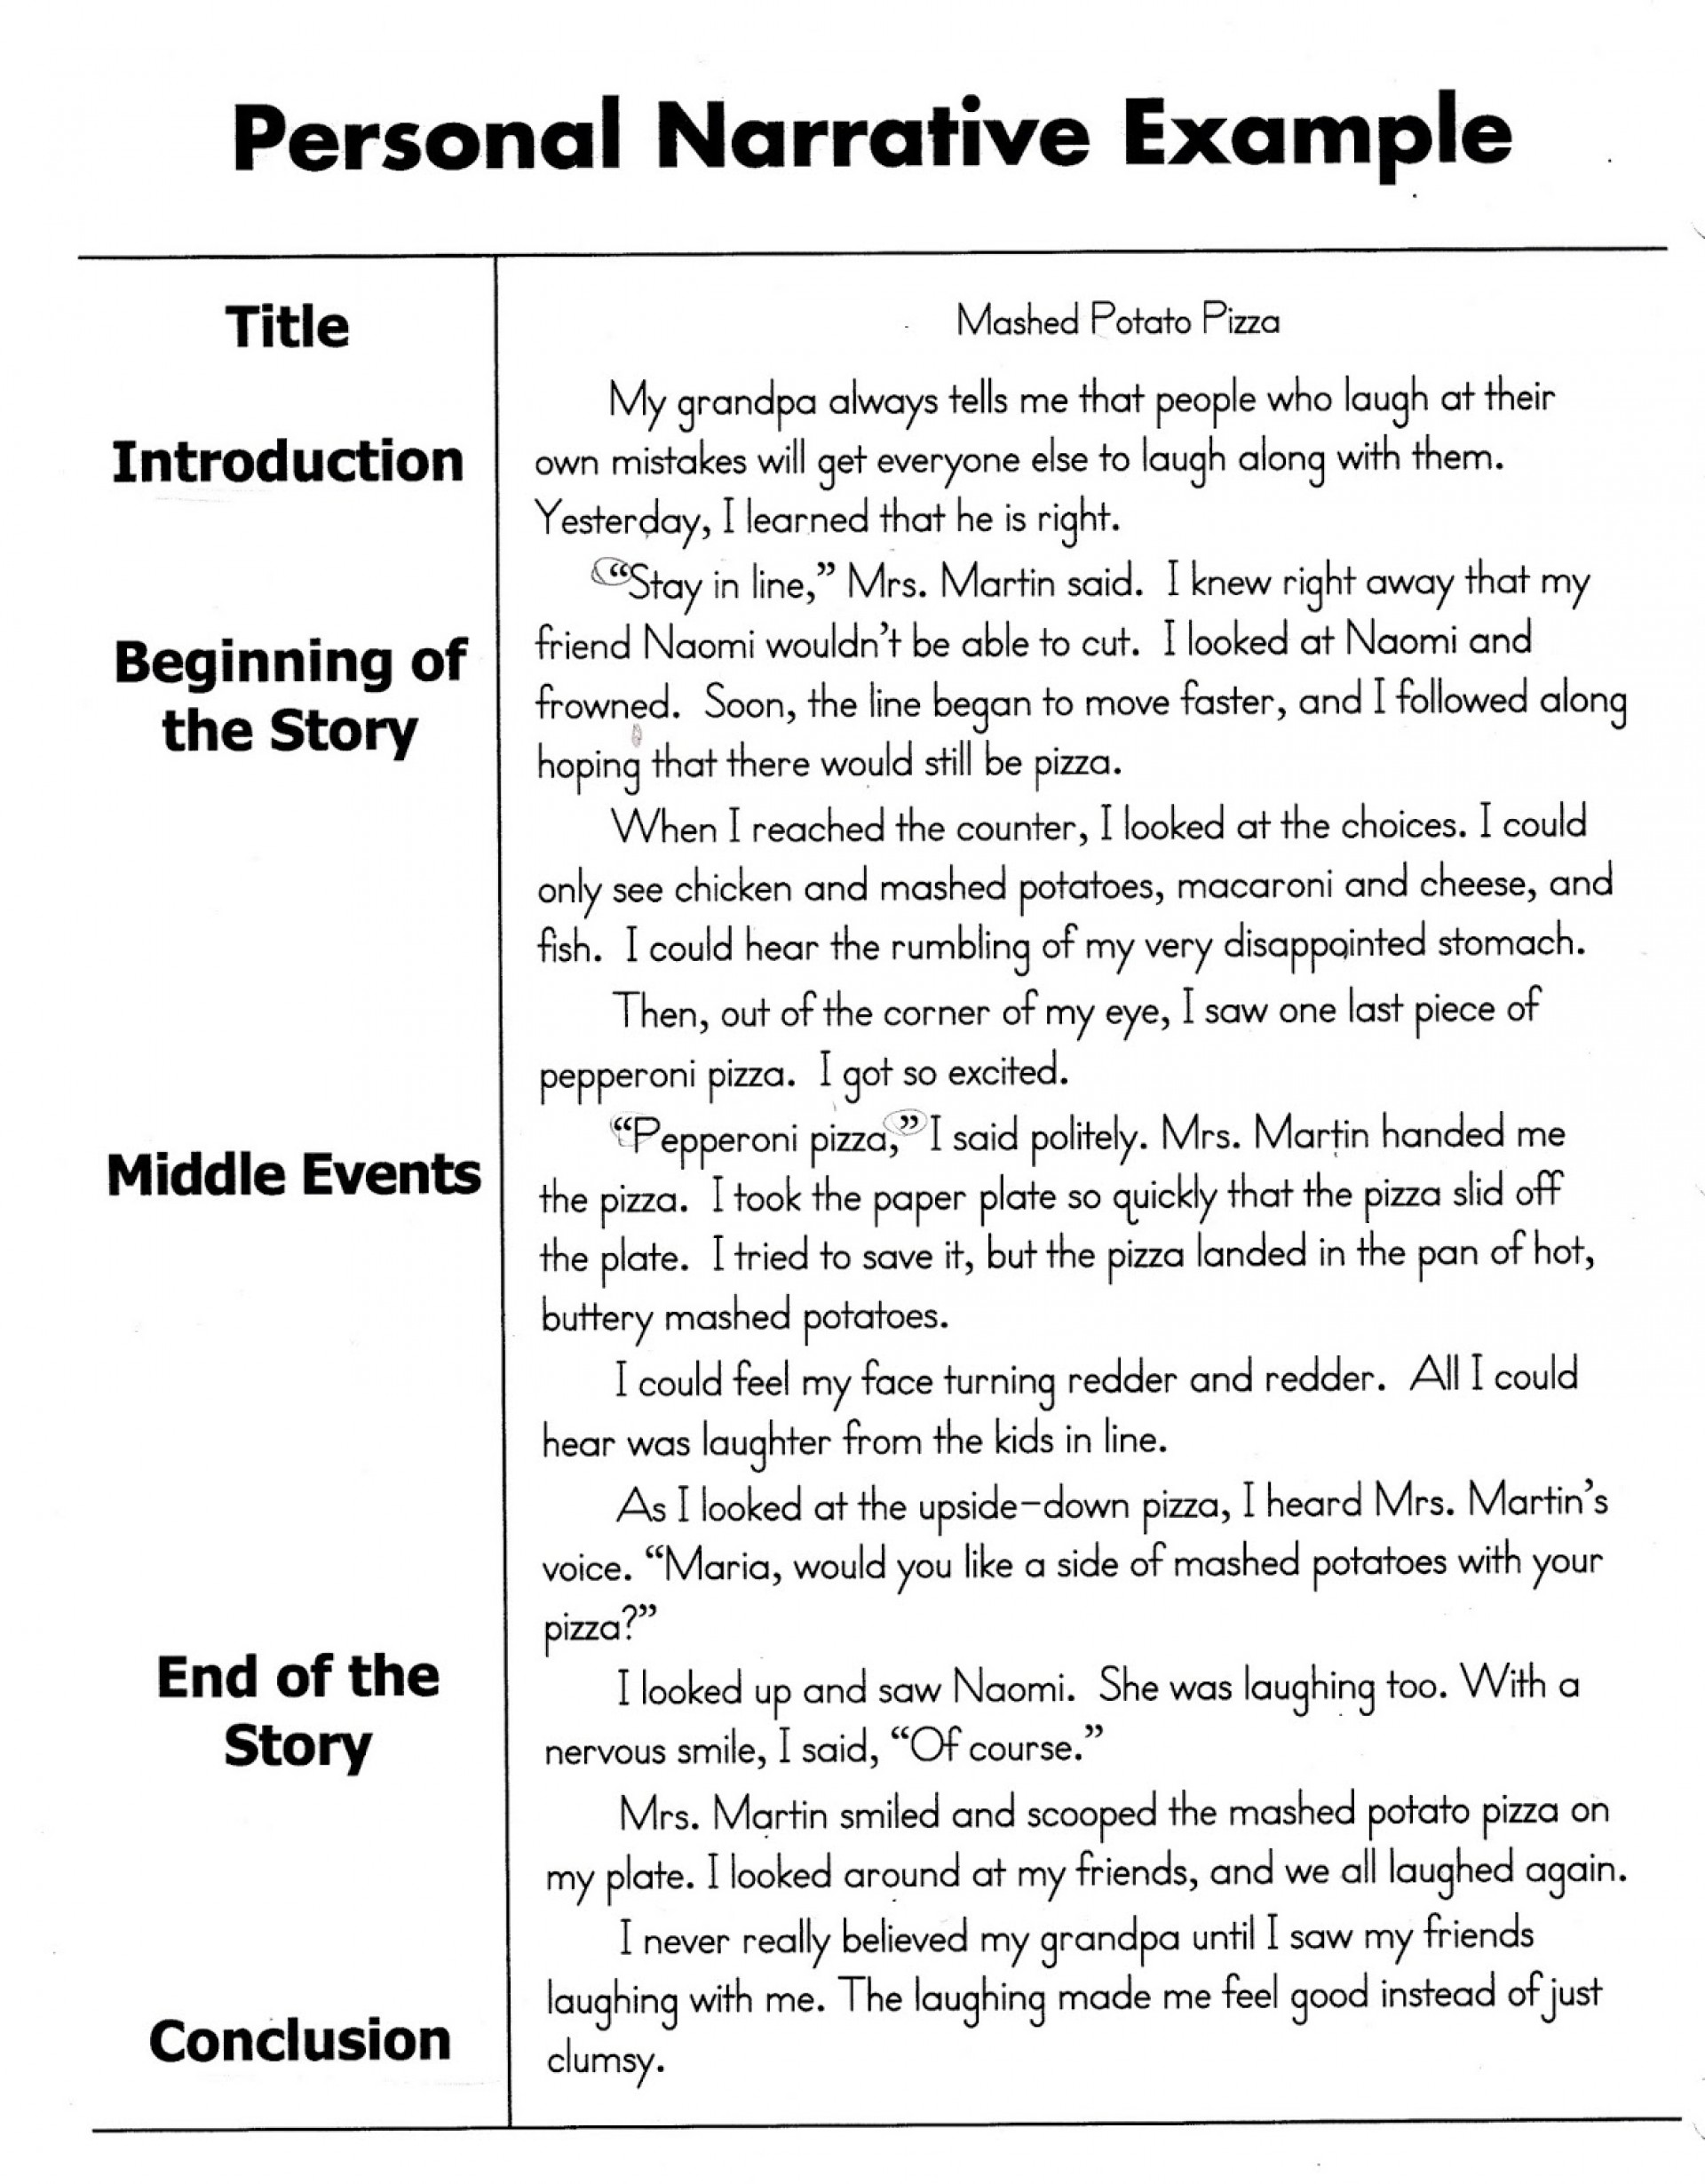 007 Personal20narrative Personal Essay Prompts Beautiful Narrative Writing 3rd Grade Ks1 Ks2 1920